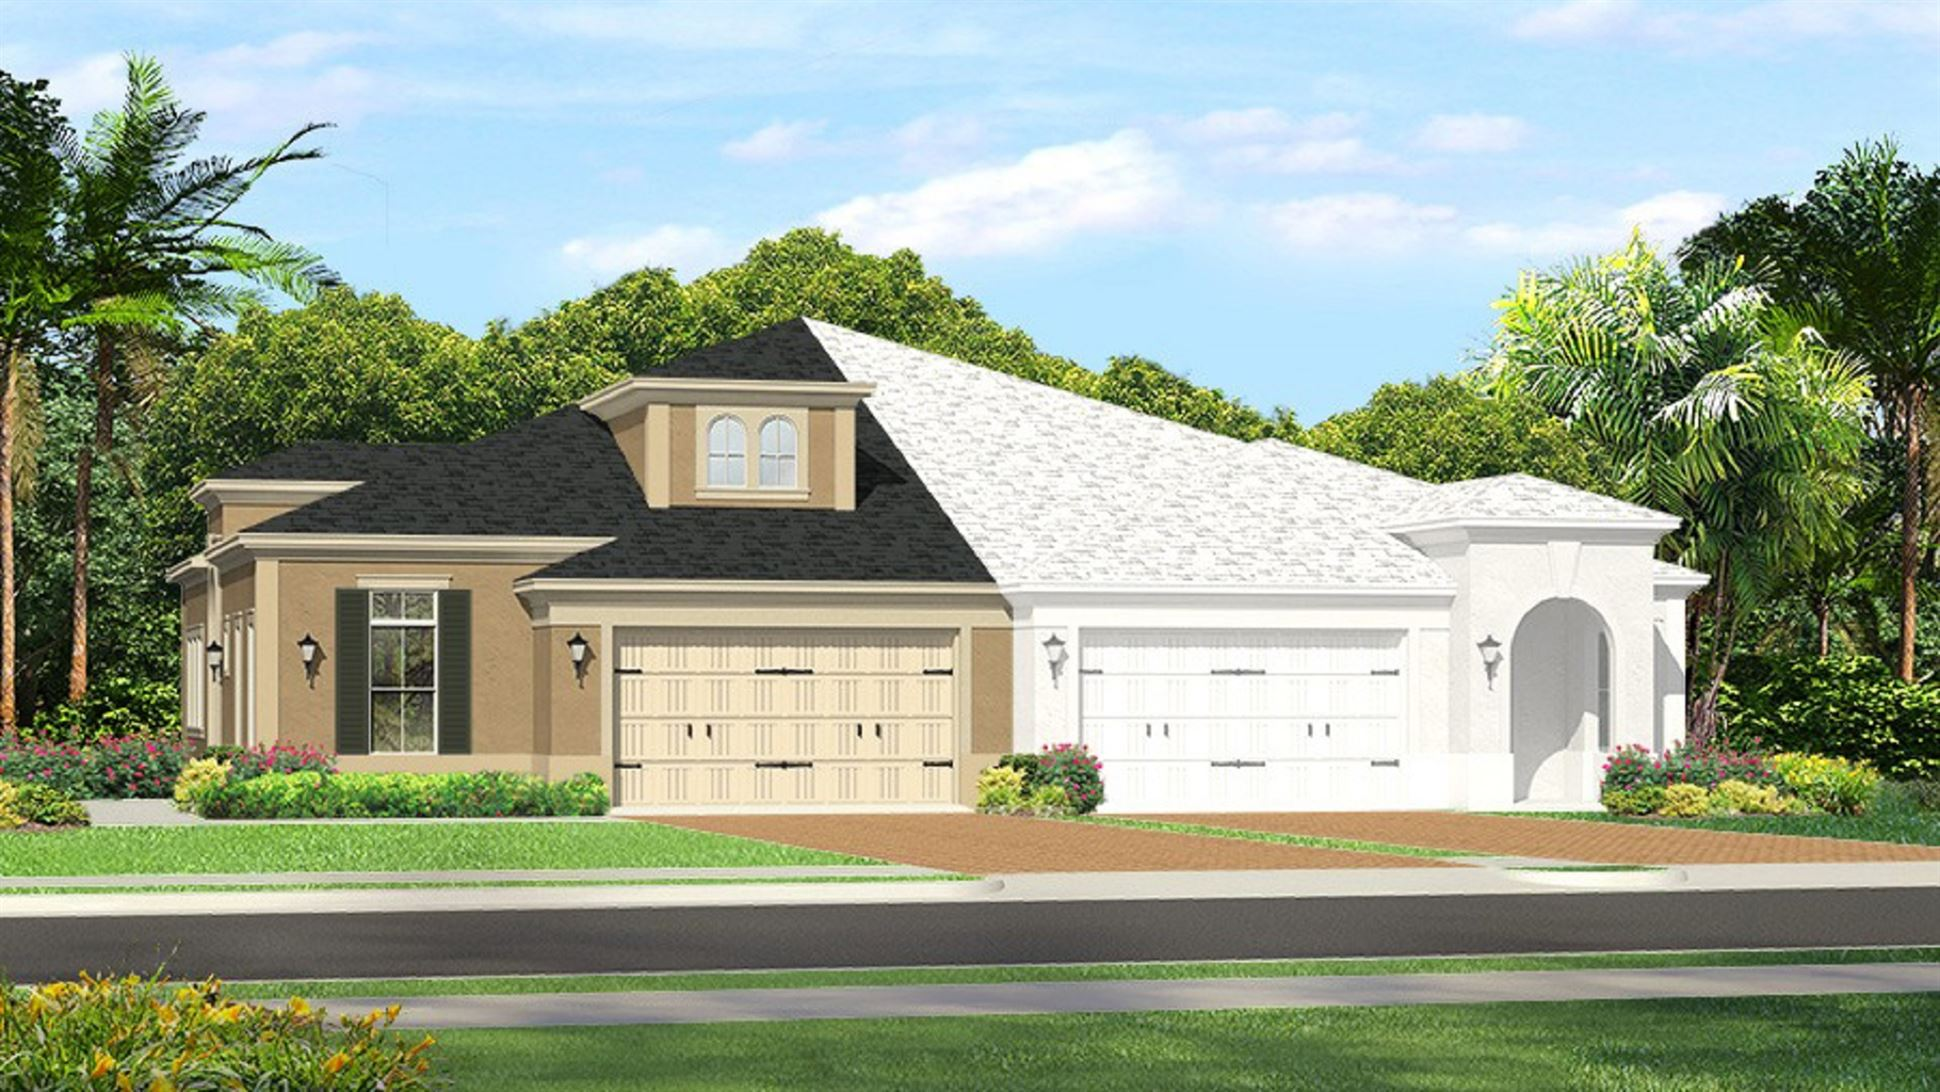 Arbor Grande Lakewood Ranch Florida Real Estate | Lakewood Ranch Realtor | New Homes Communities